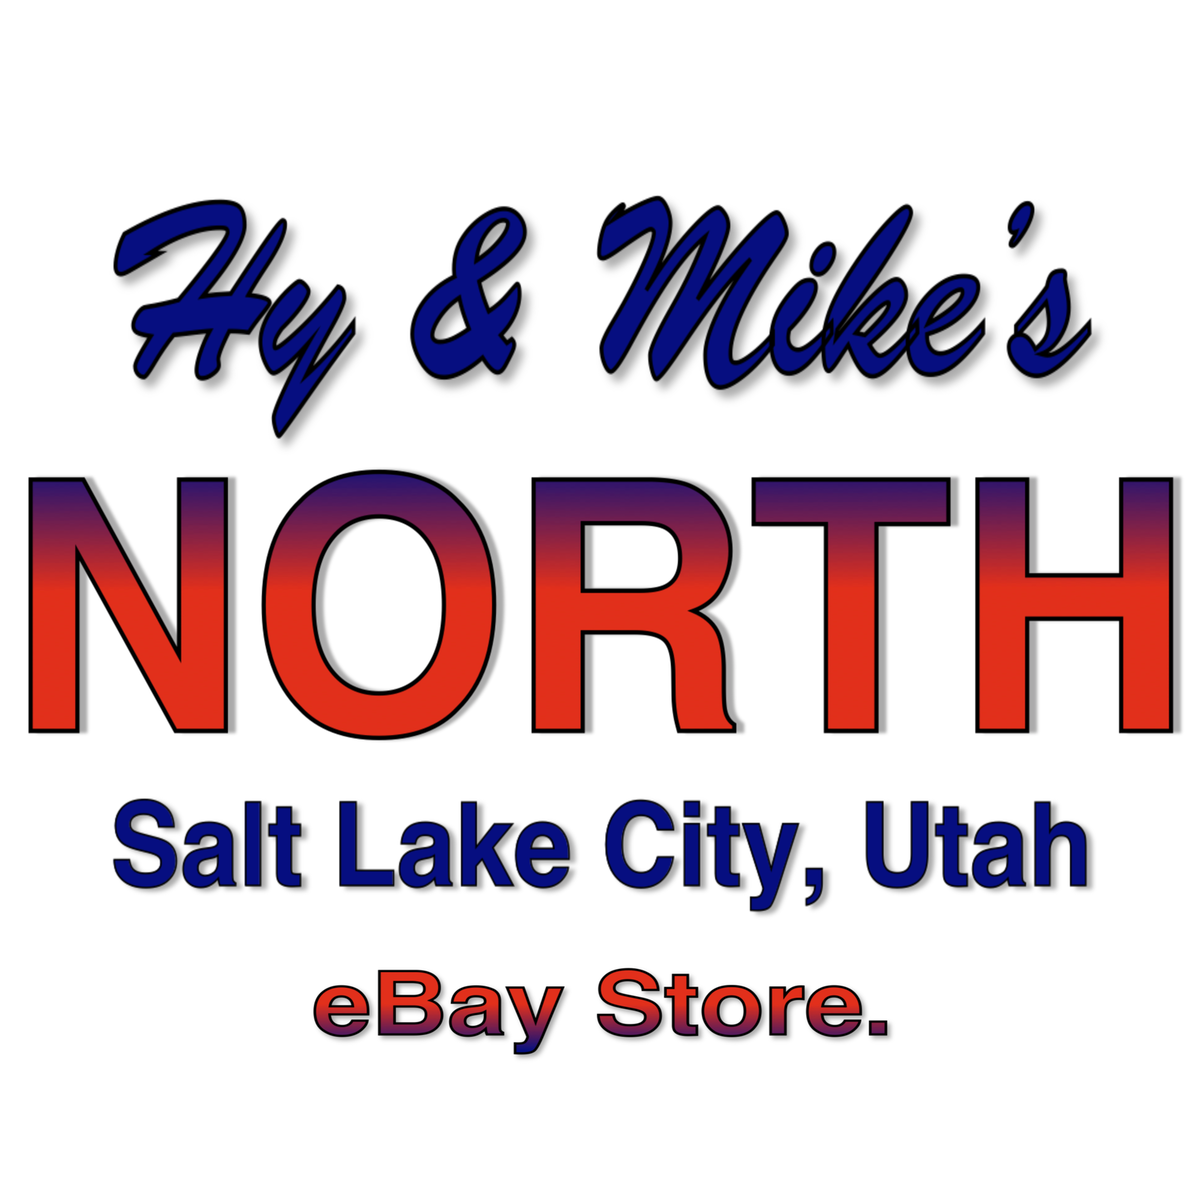 Hy & Mike's North